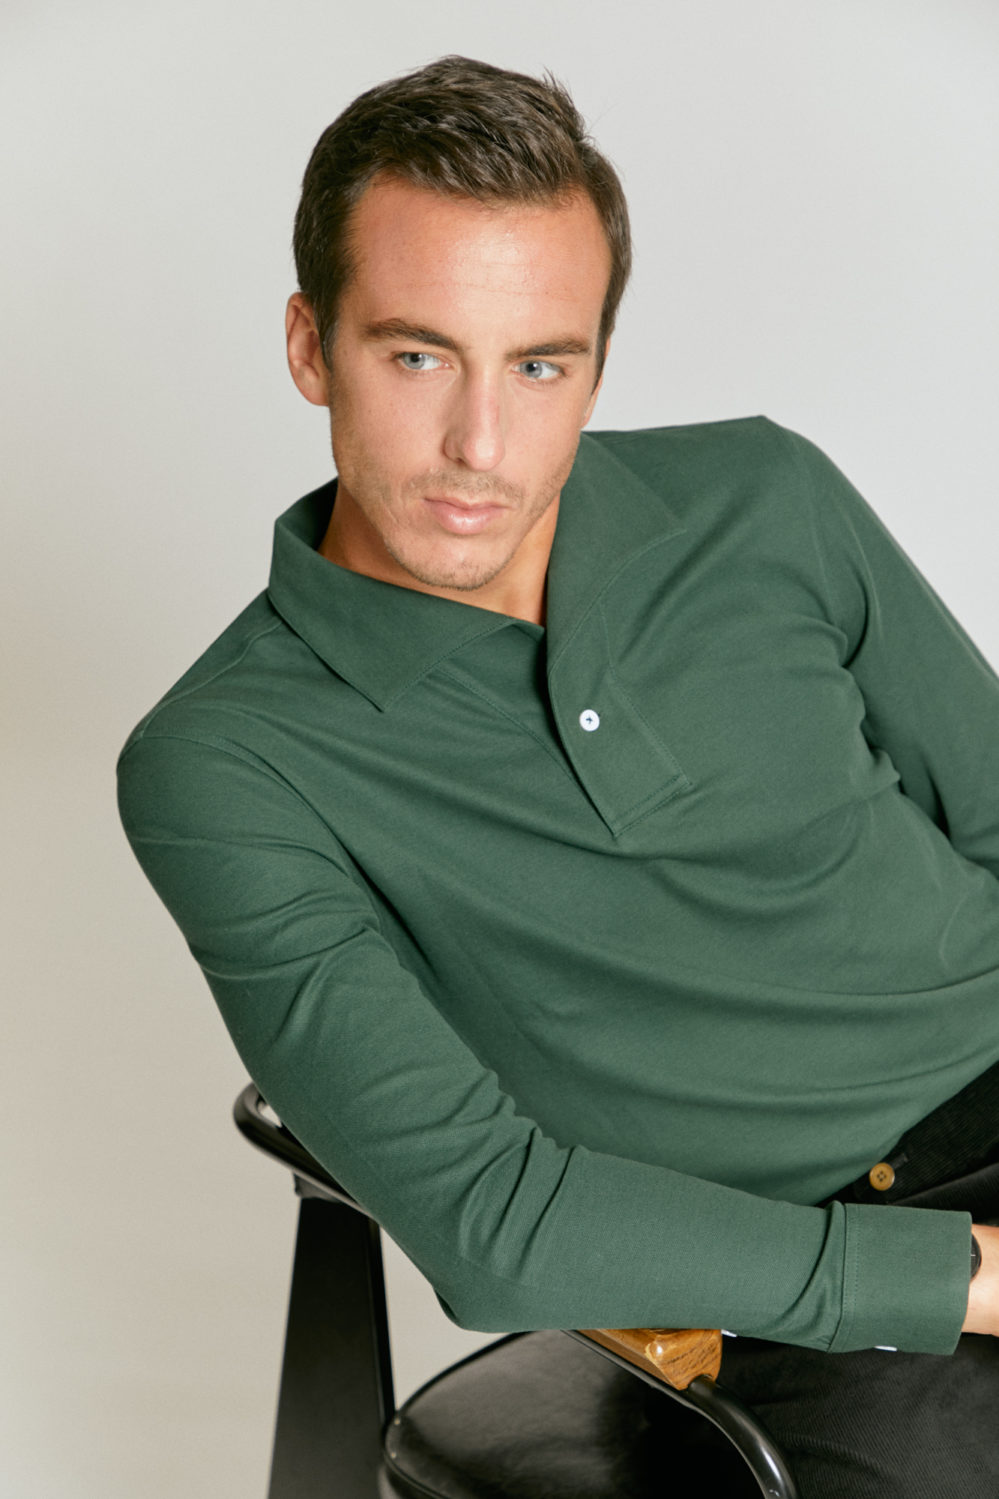 Long-sleeved men's polo shirt in green, custom-made to fit by Senszio's tailors